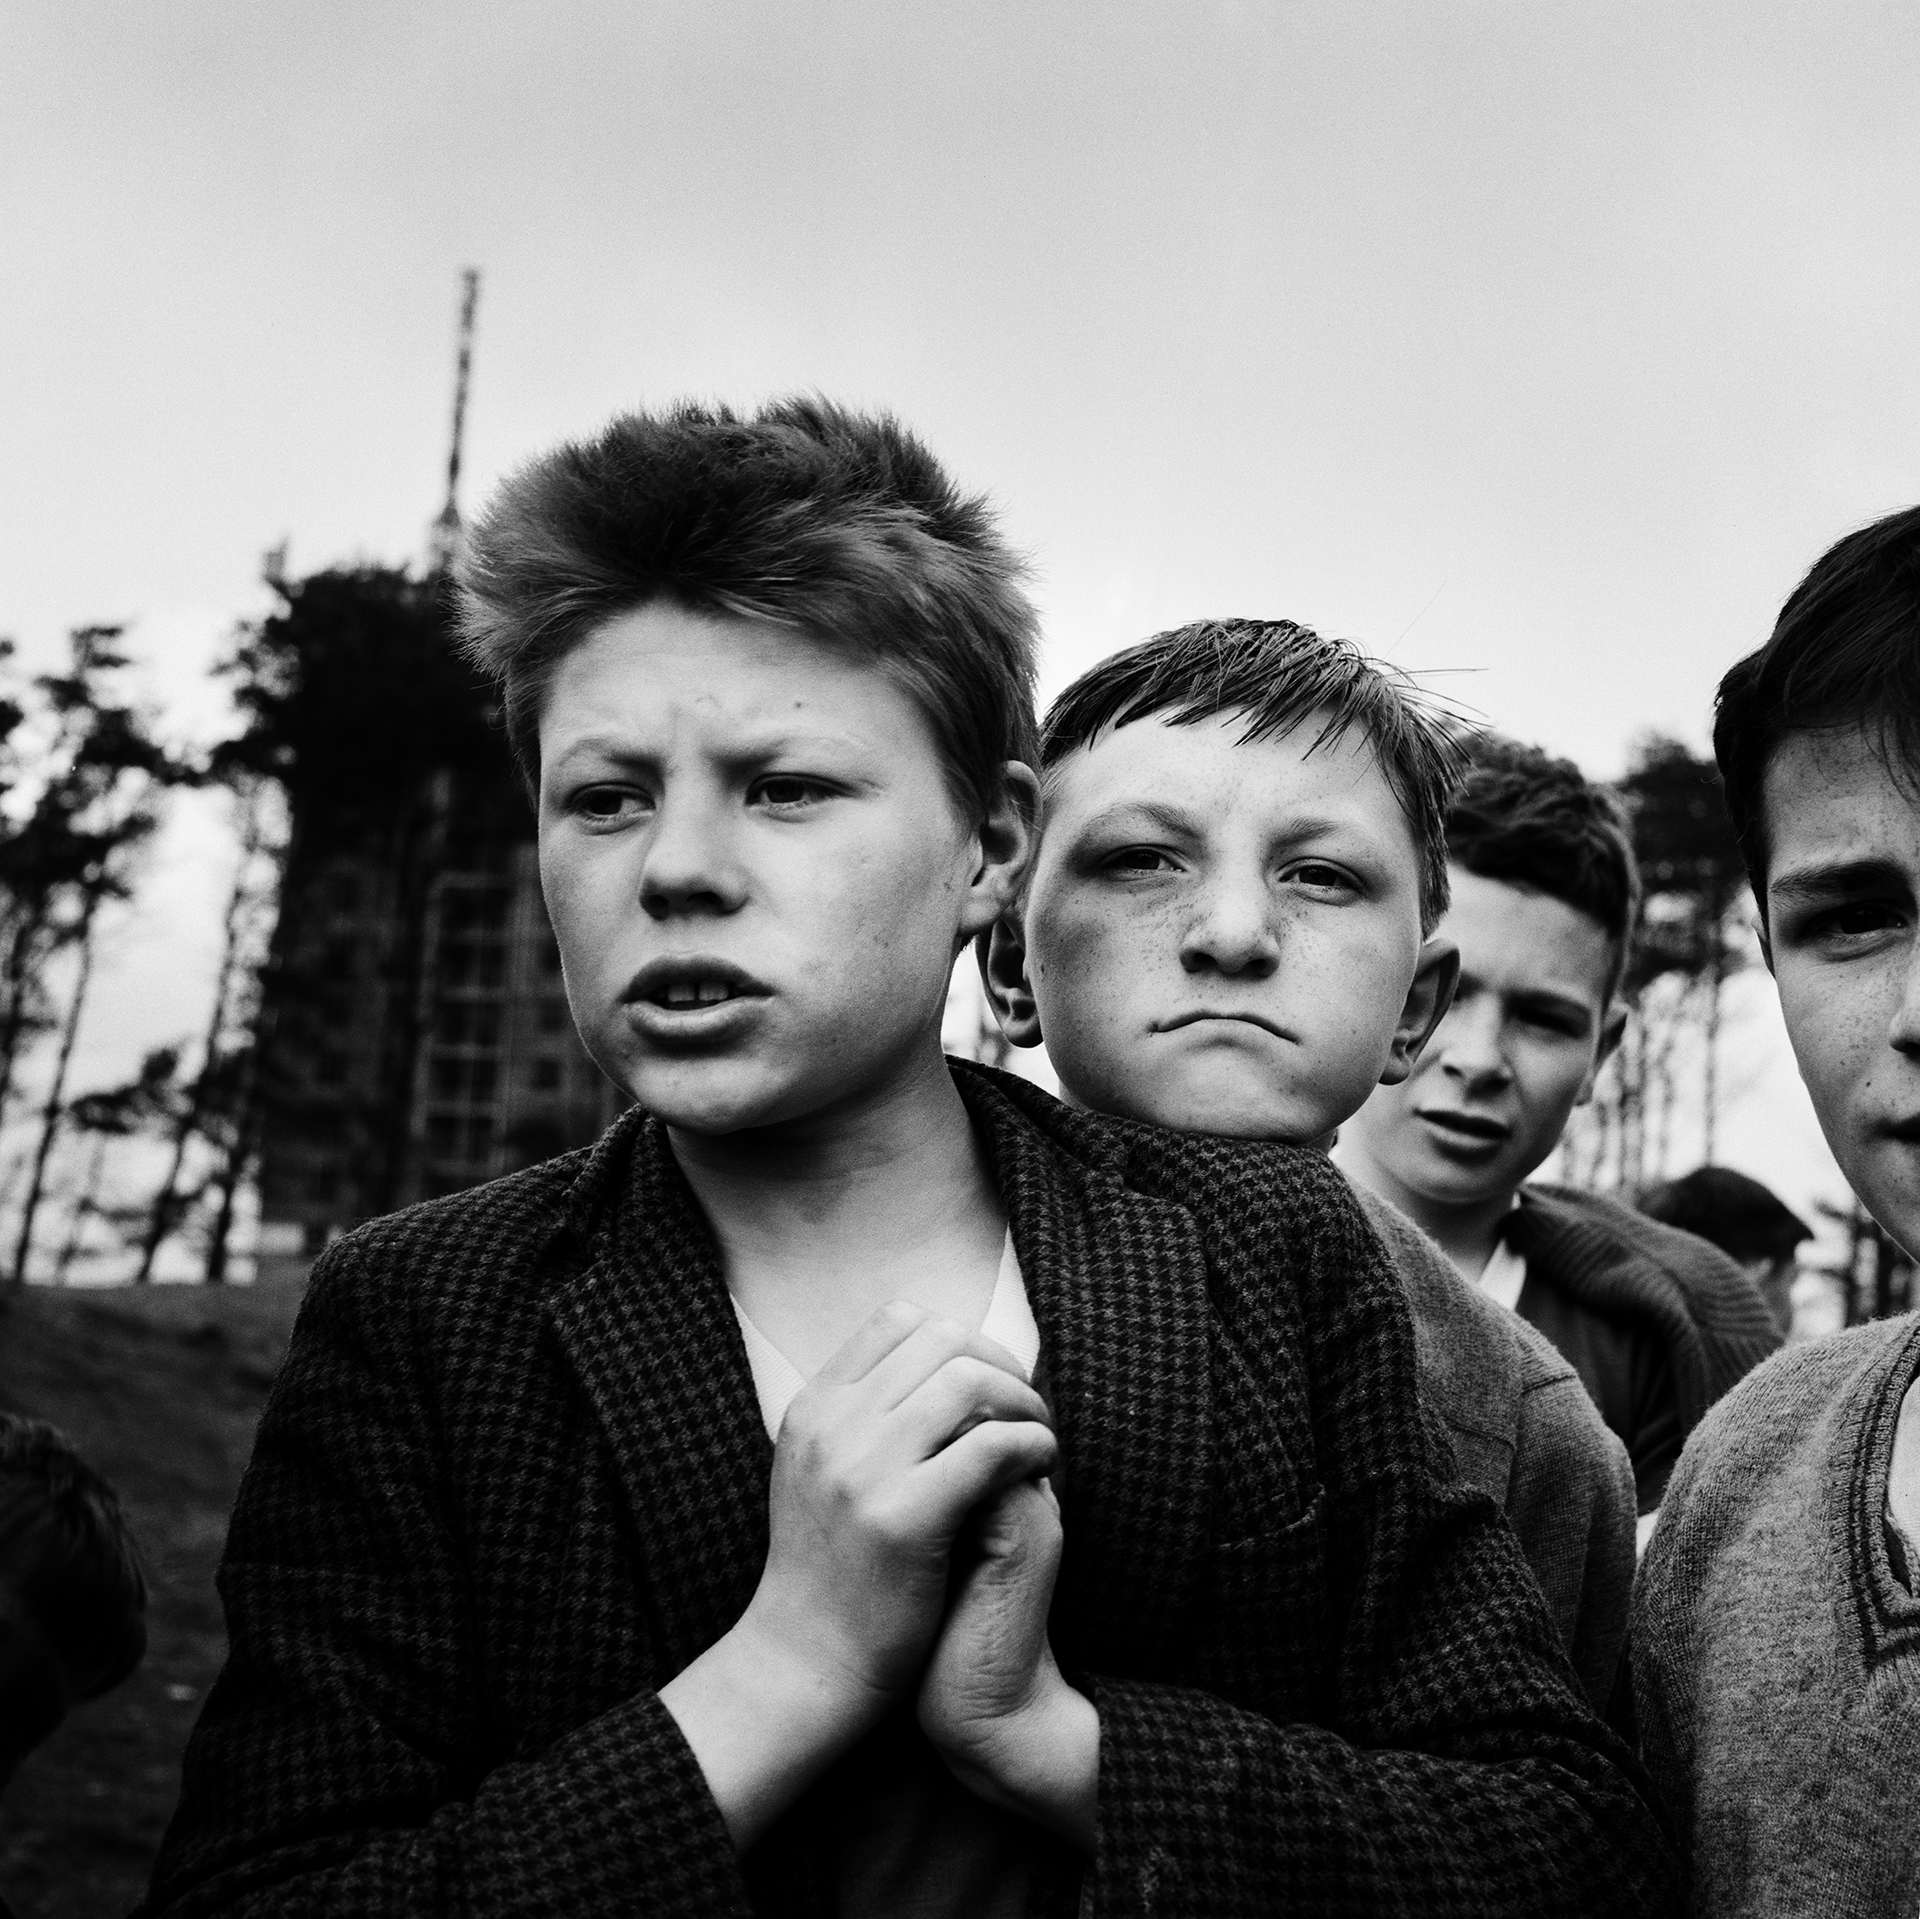 Image of The Castlemilk Lads (1963) by Oscar Marzaroli